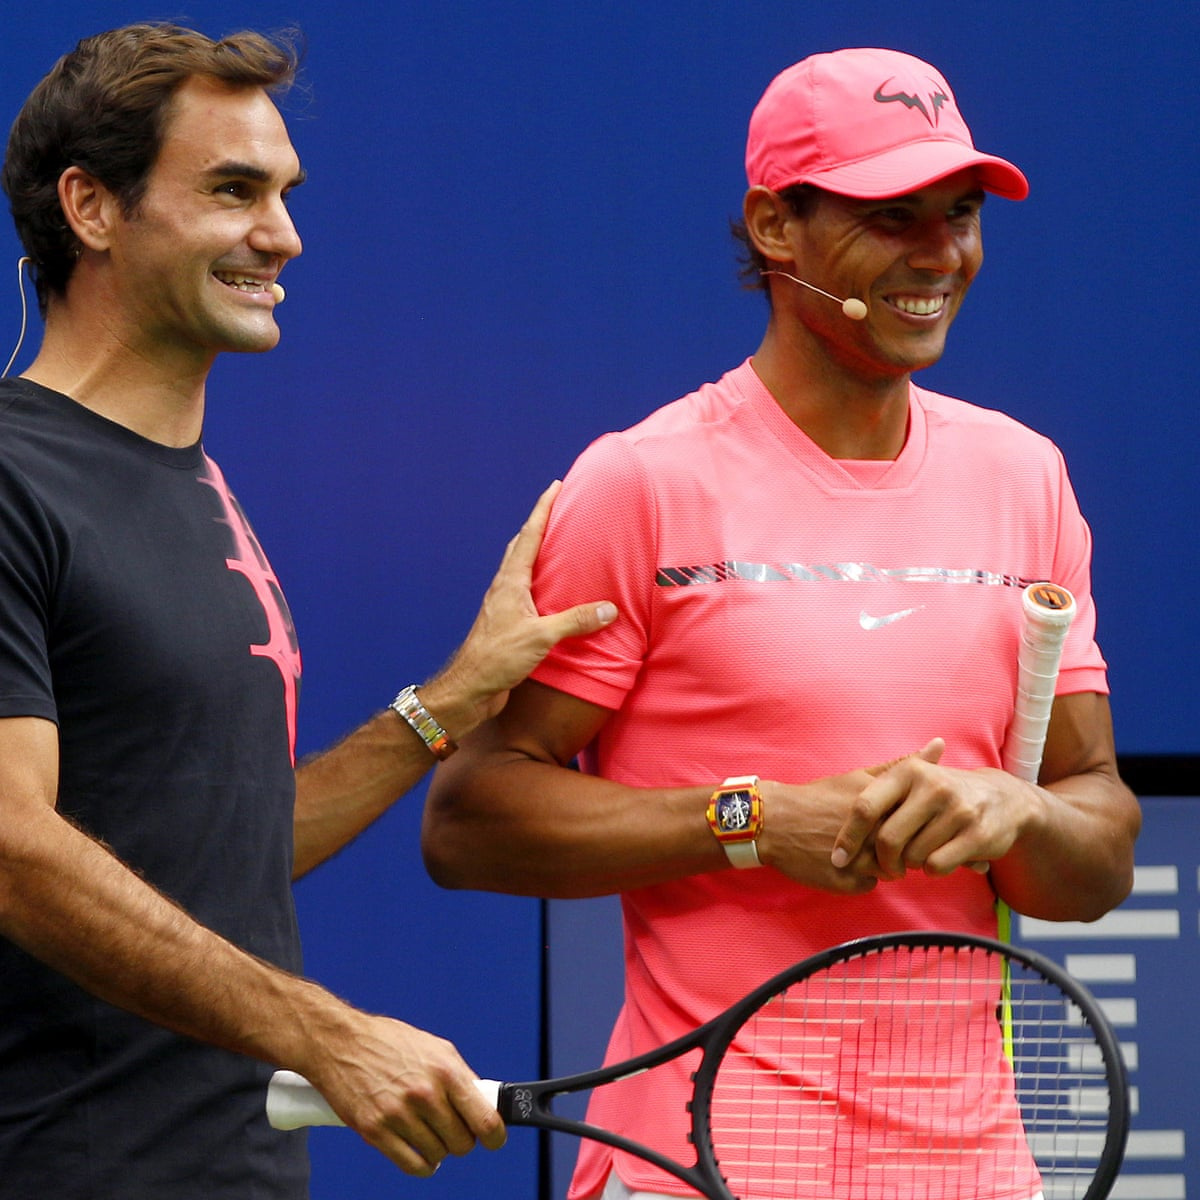 Us Open 2017 Men S Form Guide Federer Favourite To Claim 20th Grand Slam Us Open Tennis 2017 The Guardian